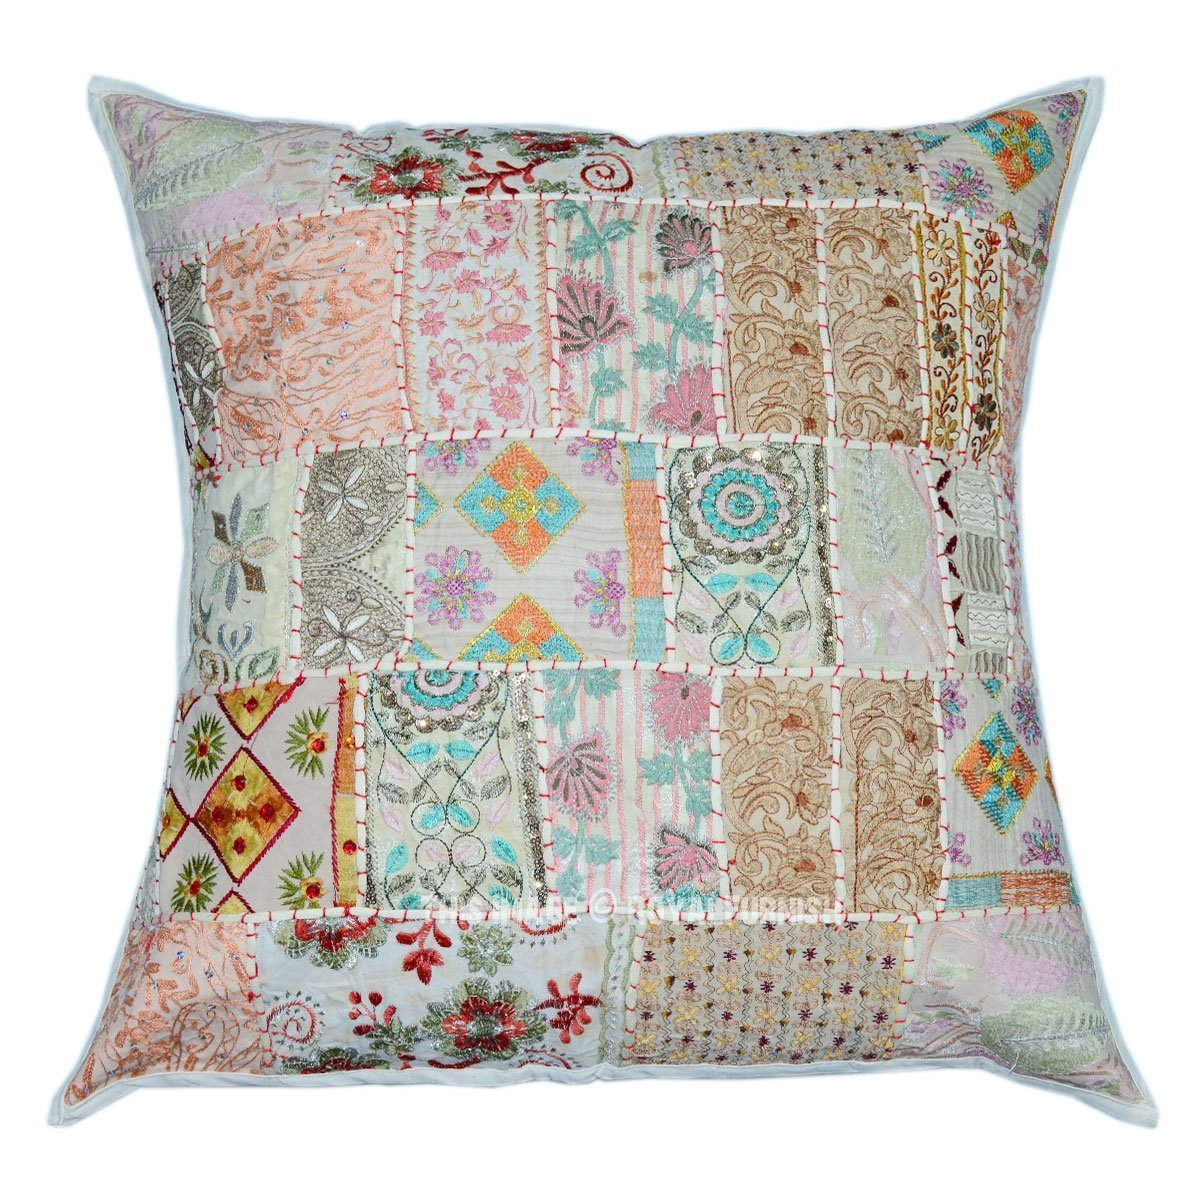 Find the best Pillows & Covers from shopnow-bqimqrqk.tk